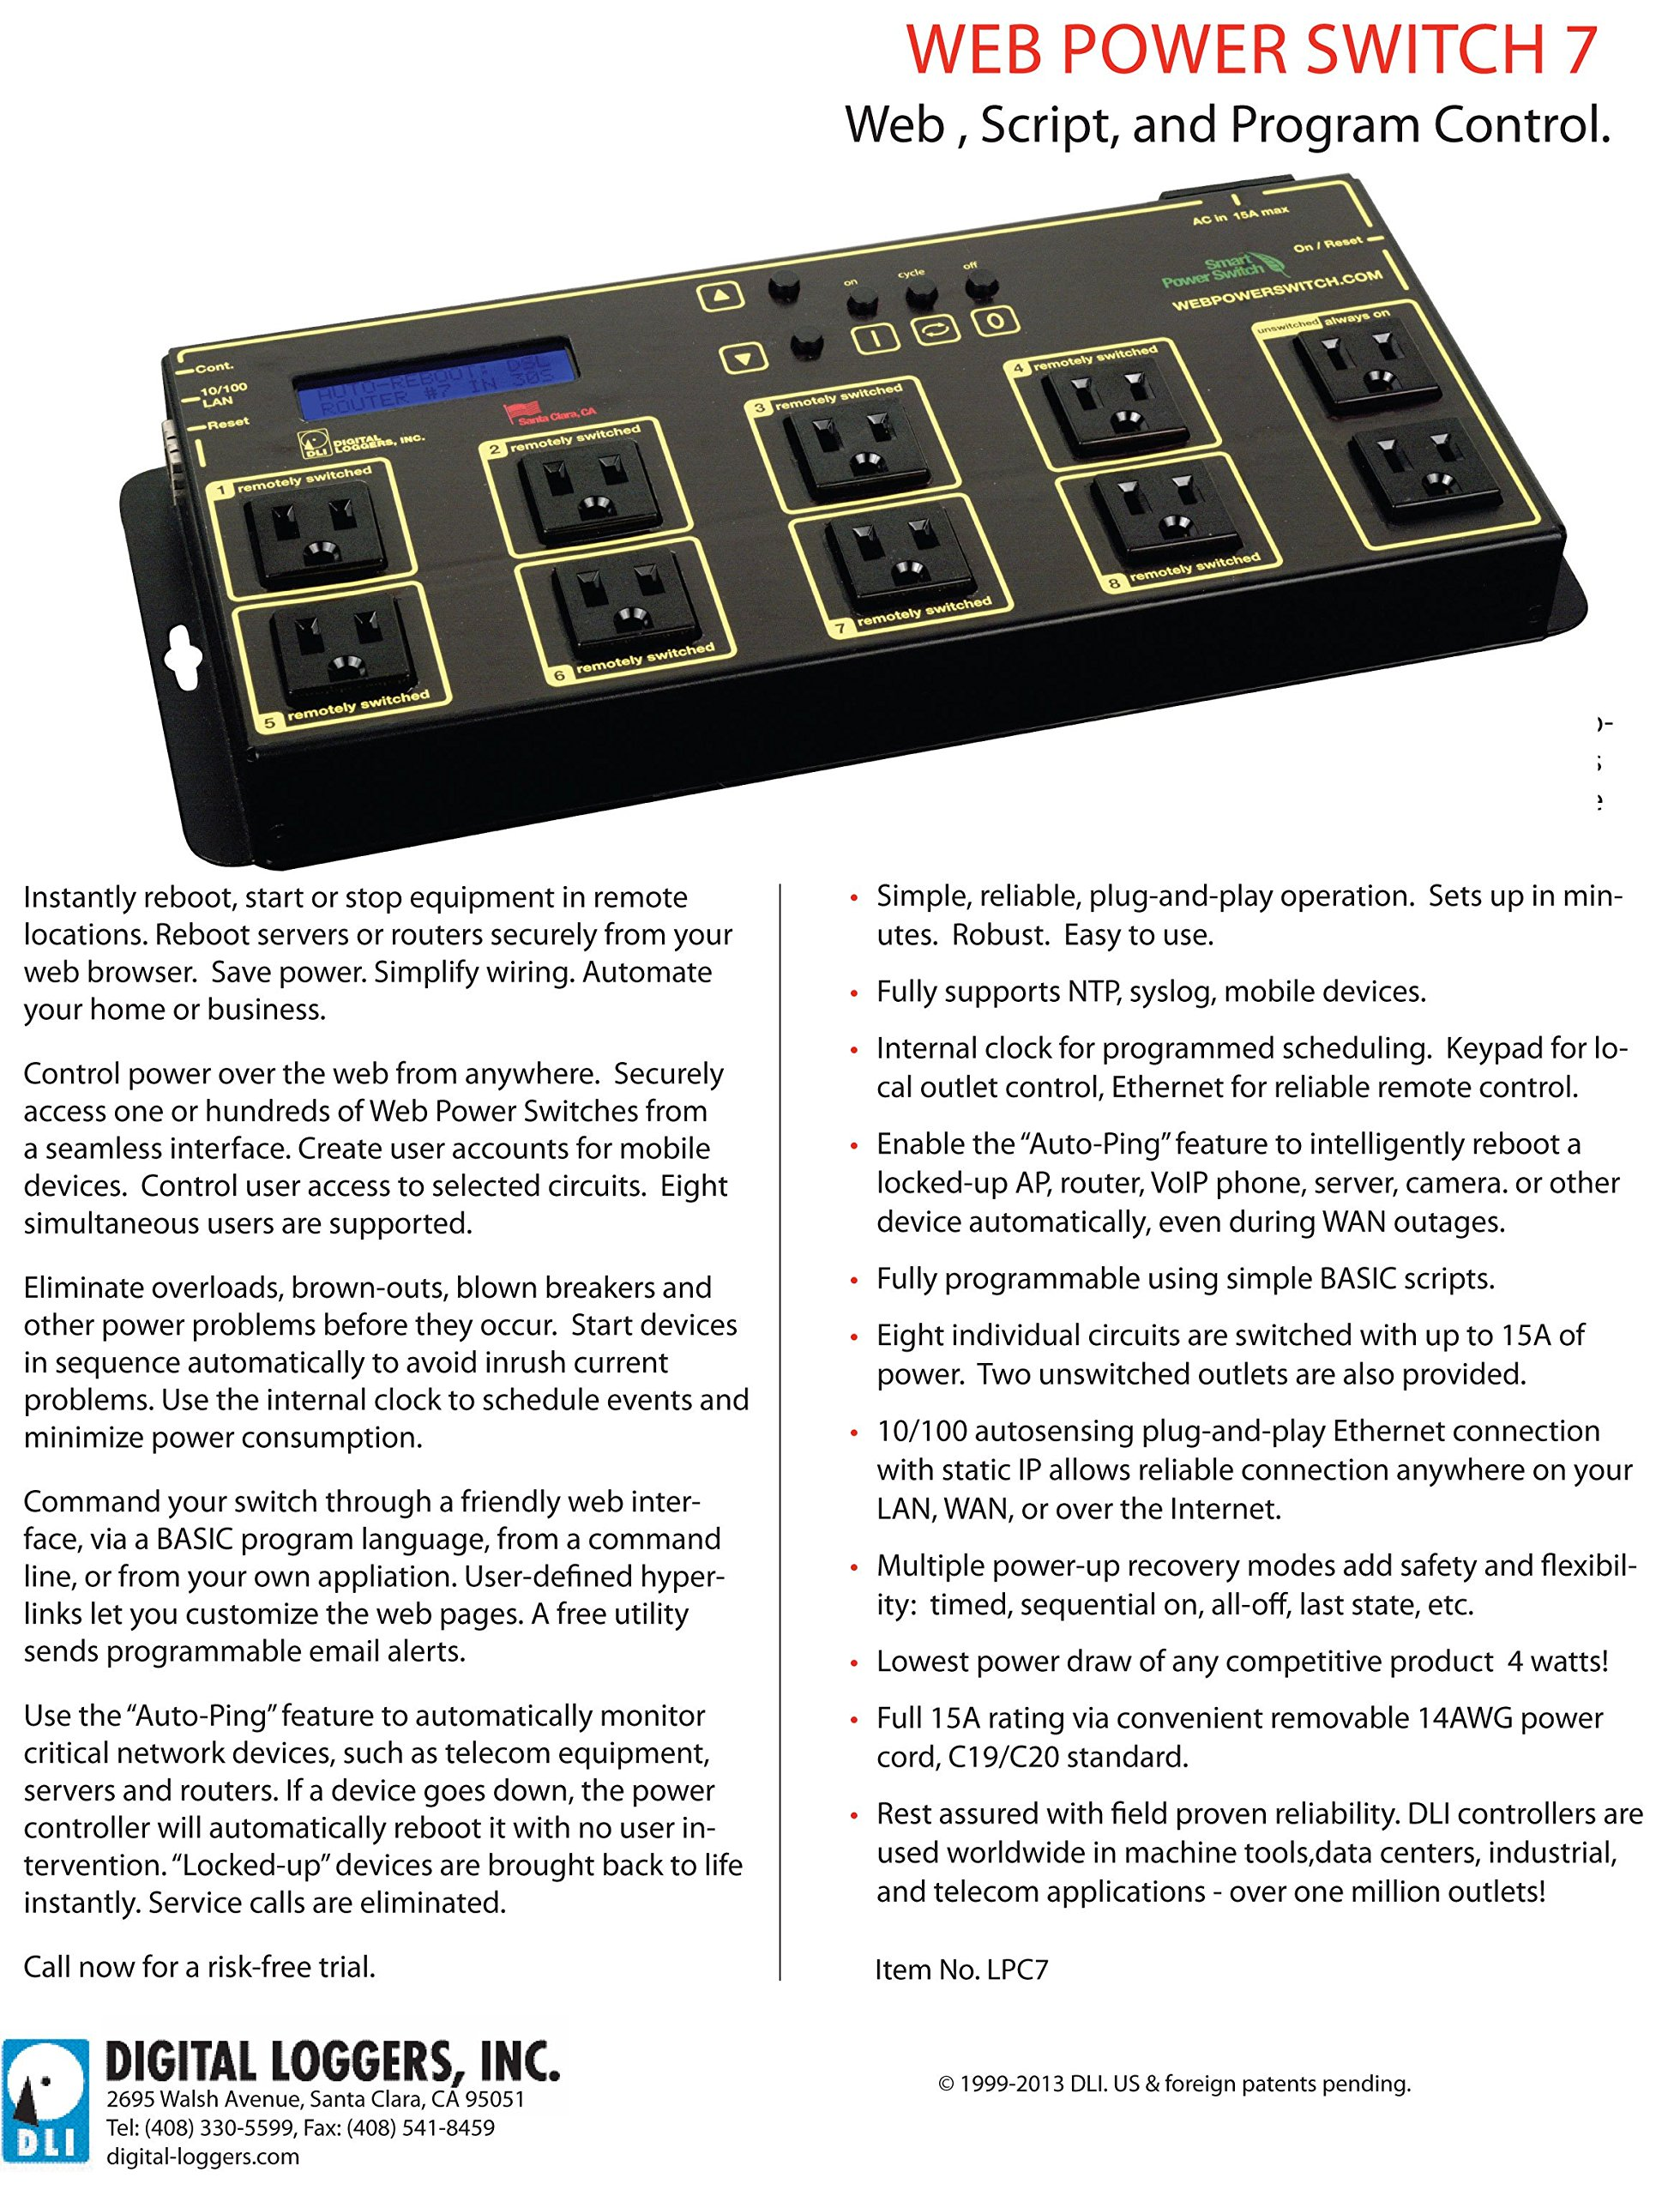 Web Power Switch 7 with HD Power Supply & Cord by DIGITAL LOGGERS (Image #3)